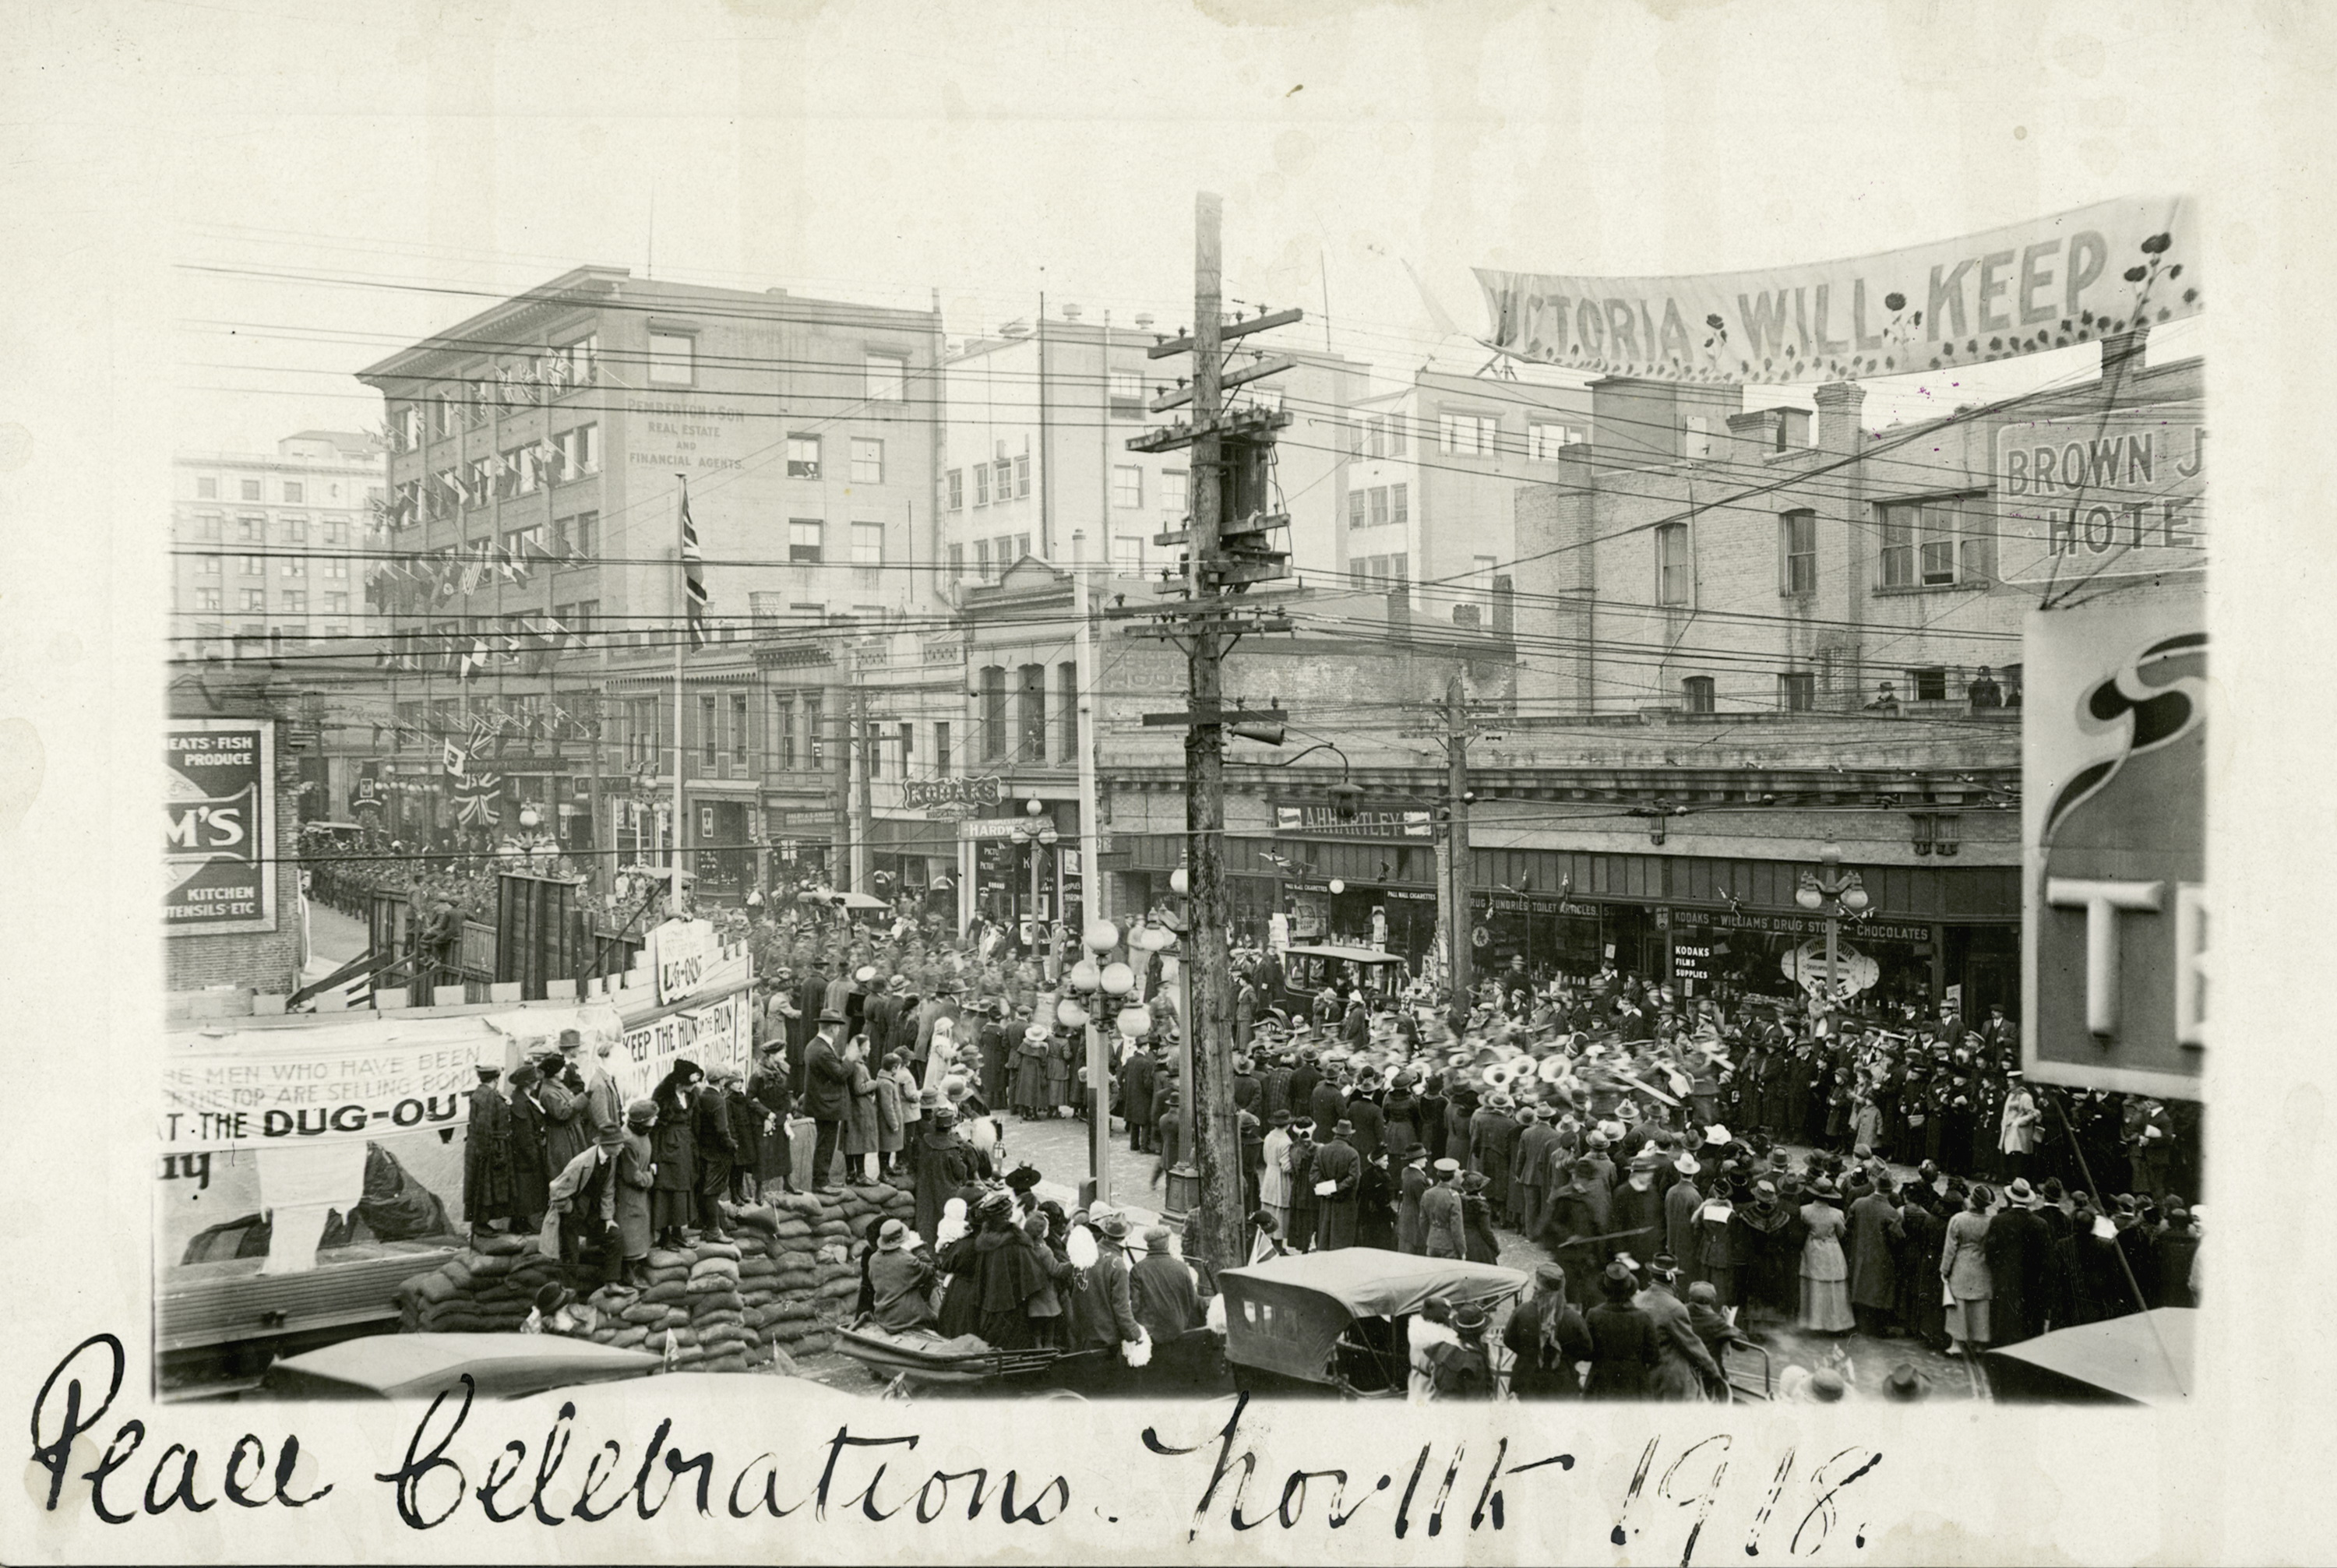 Armistice celebrations in Victoria; looking east on Fort Street from Government Street.